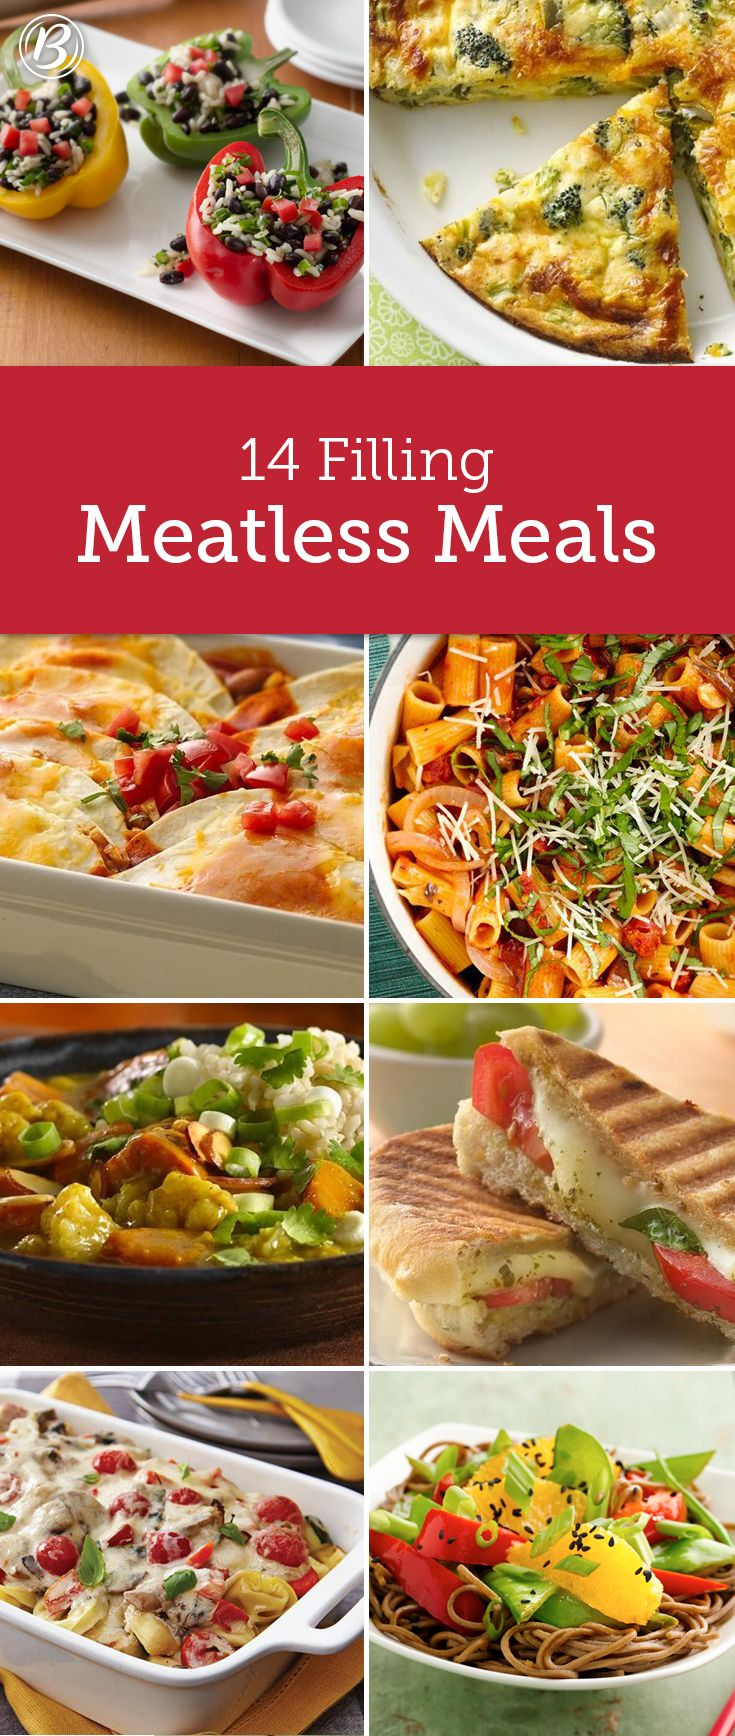 7 no meat diet Meals ideas